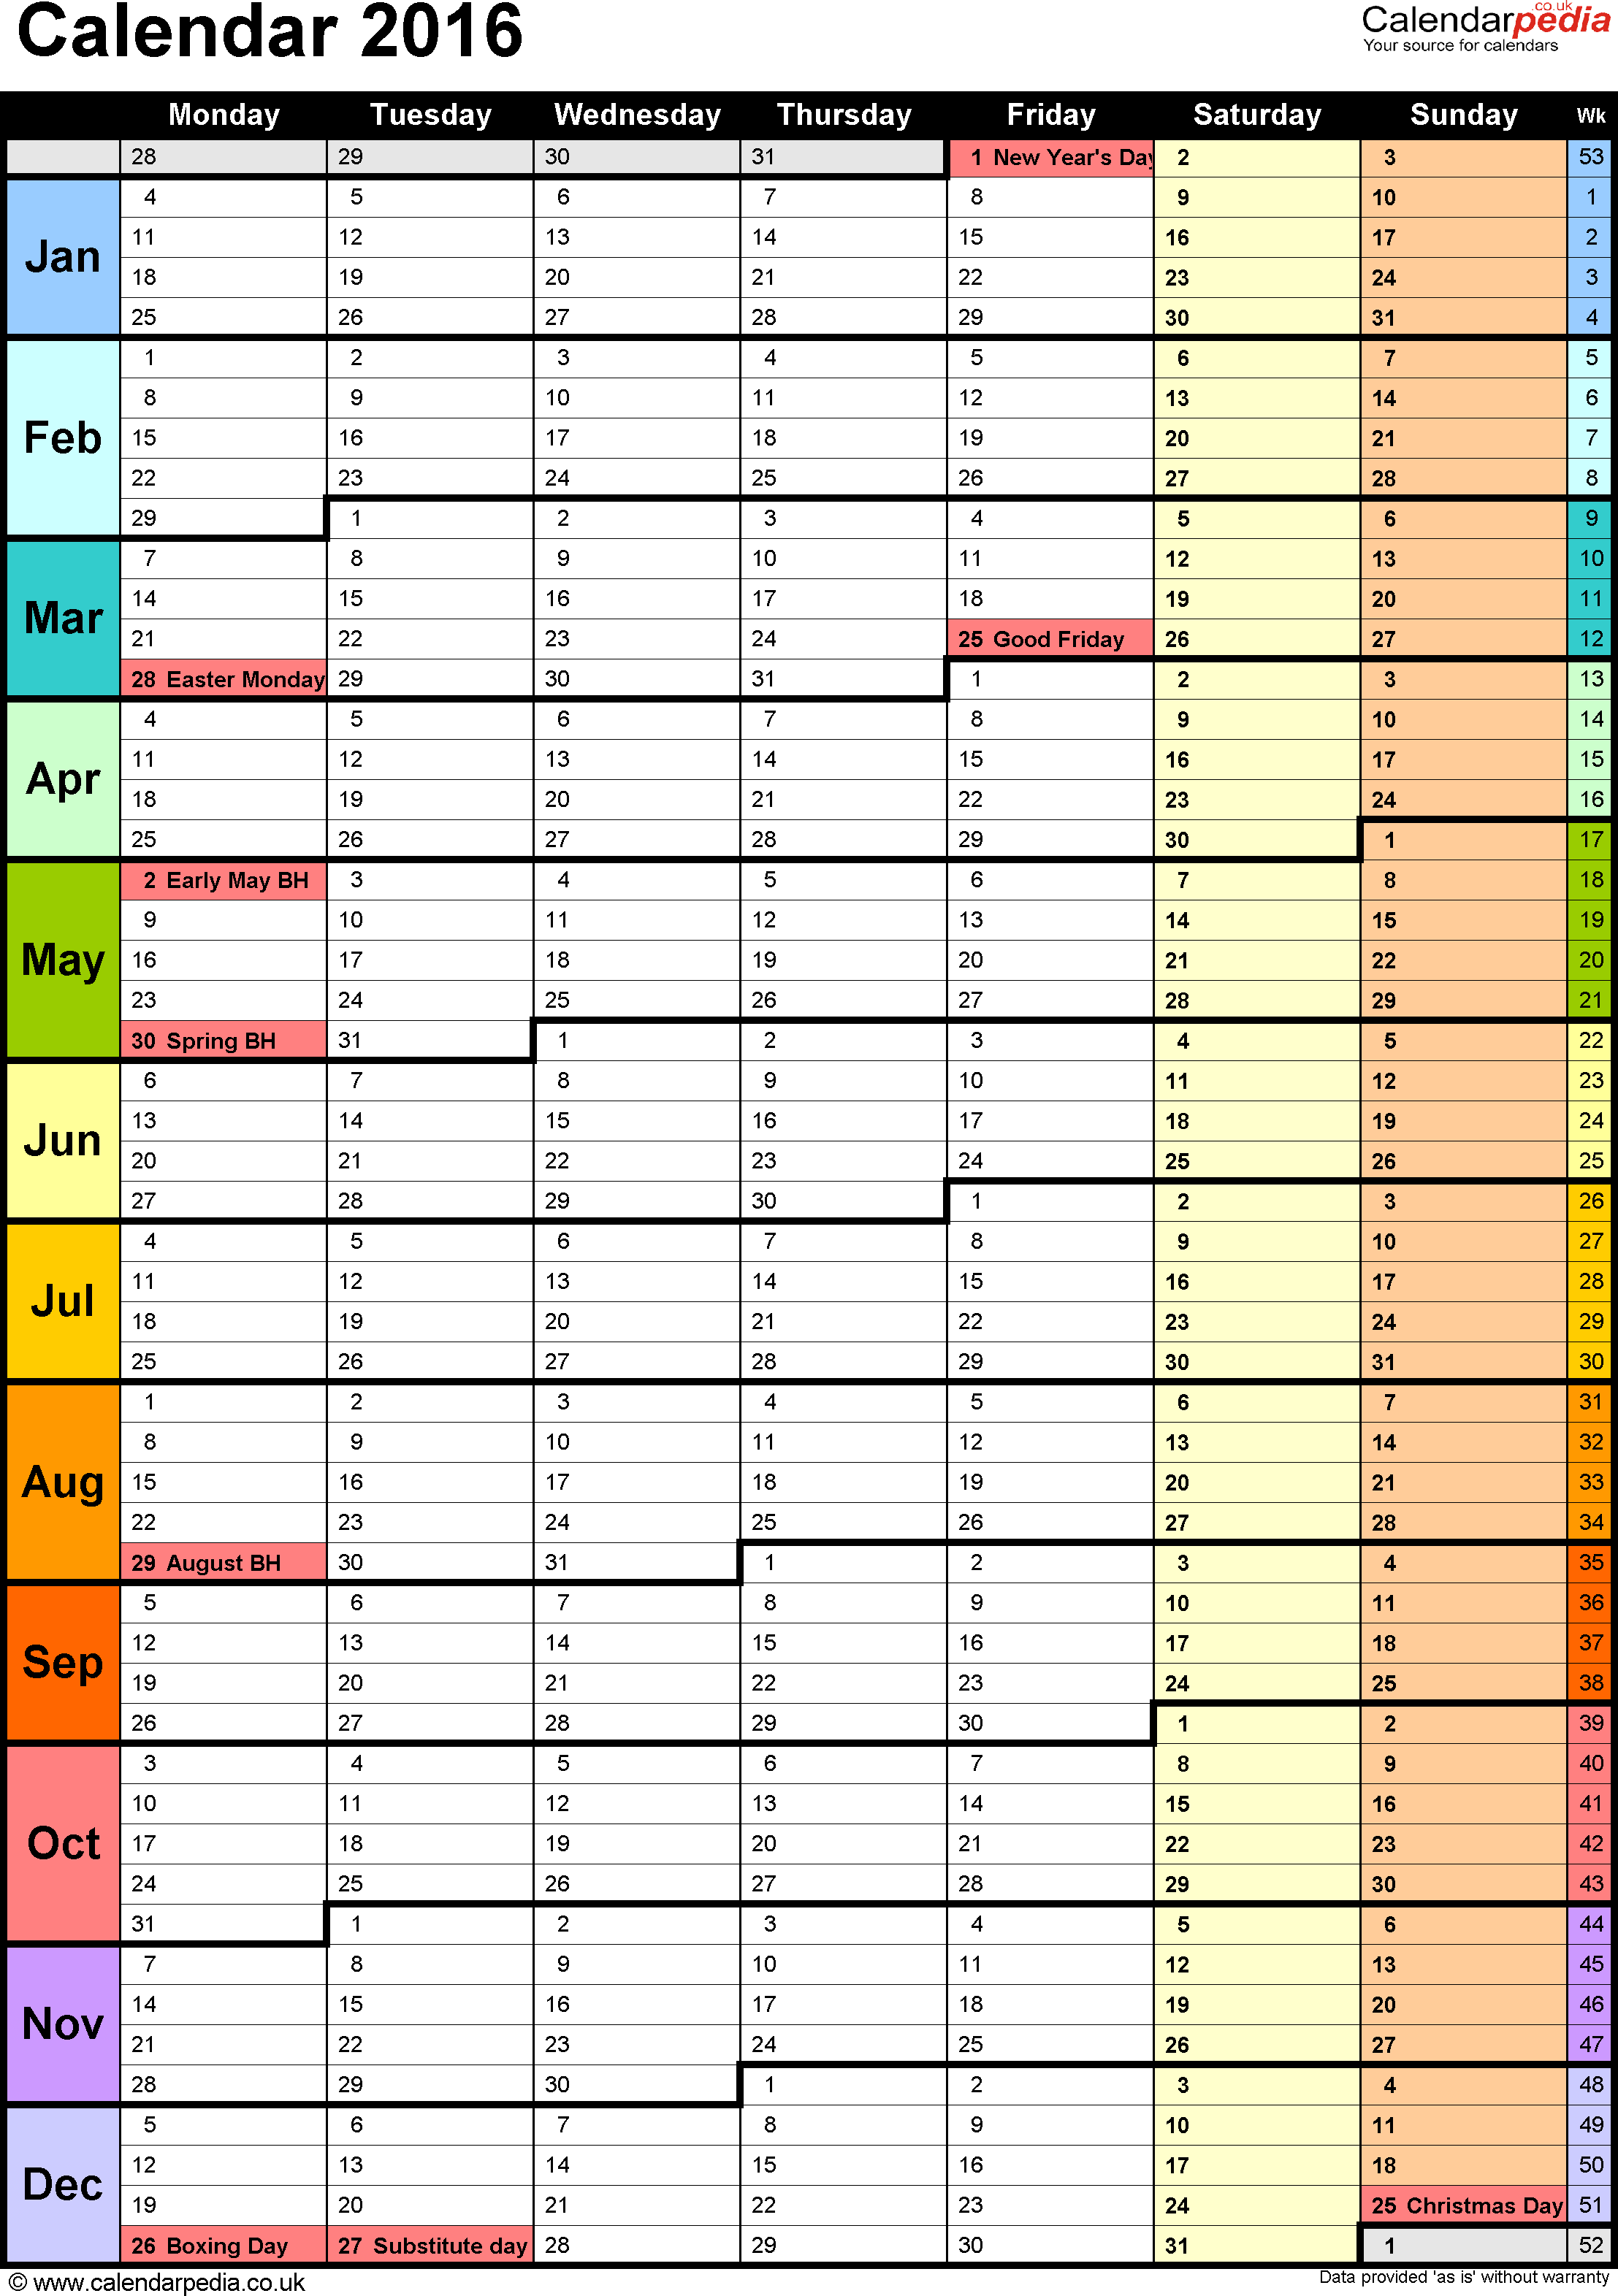 Template 15: Yearly calendar 2016 as Word template, portrait orientation, 1 page, with UK bank holidays and week numbers, days in continuous flow/rolling layout